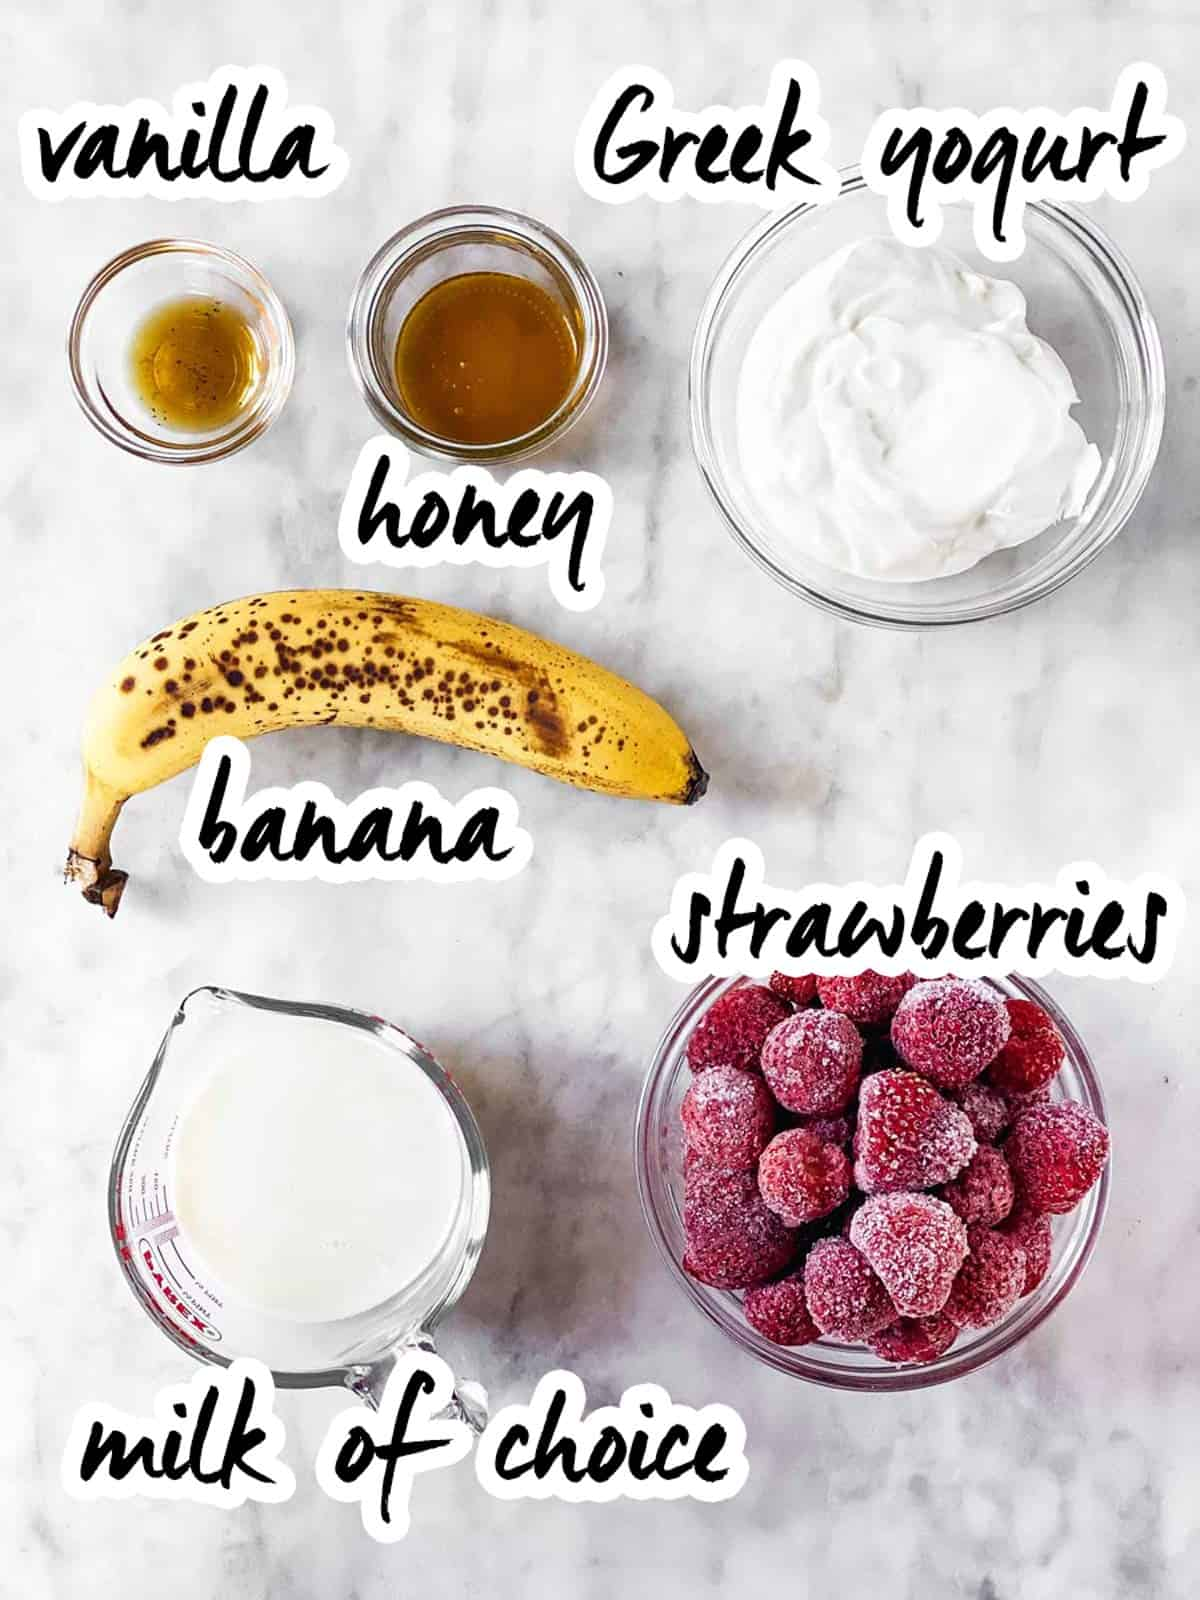 Strawberry Banana Smoothie Recipe Savory Nothings